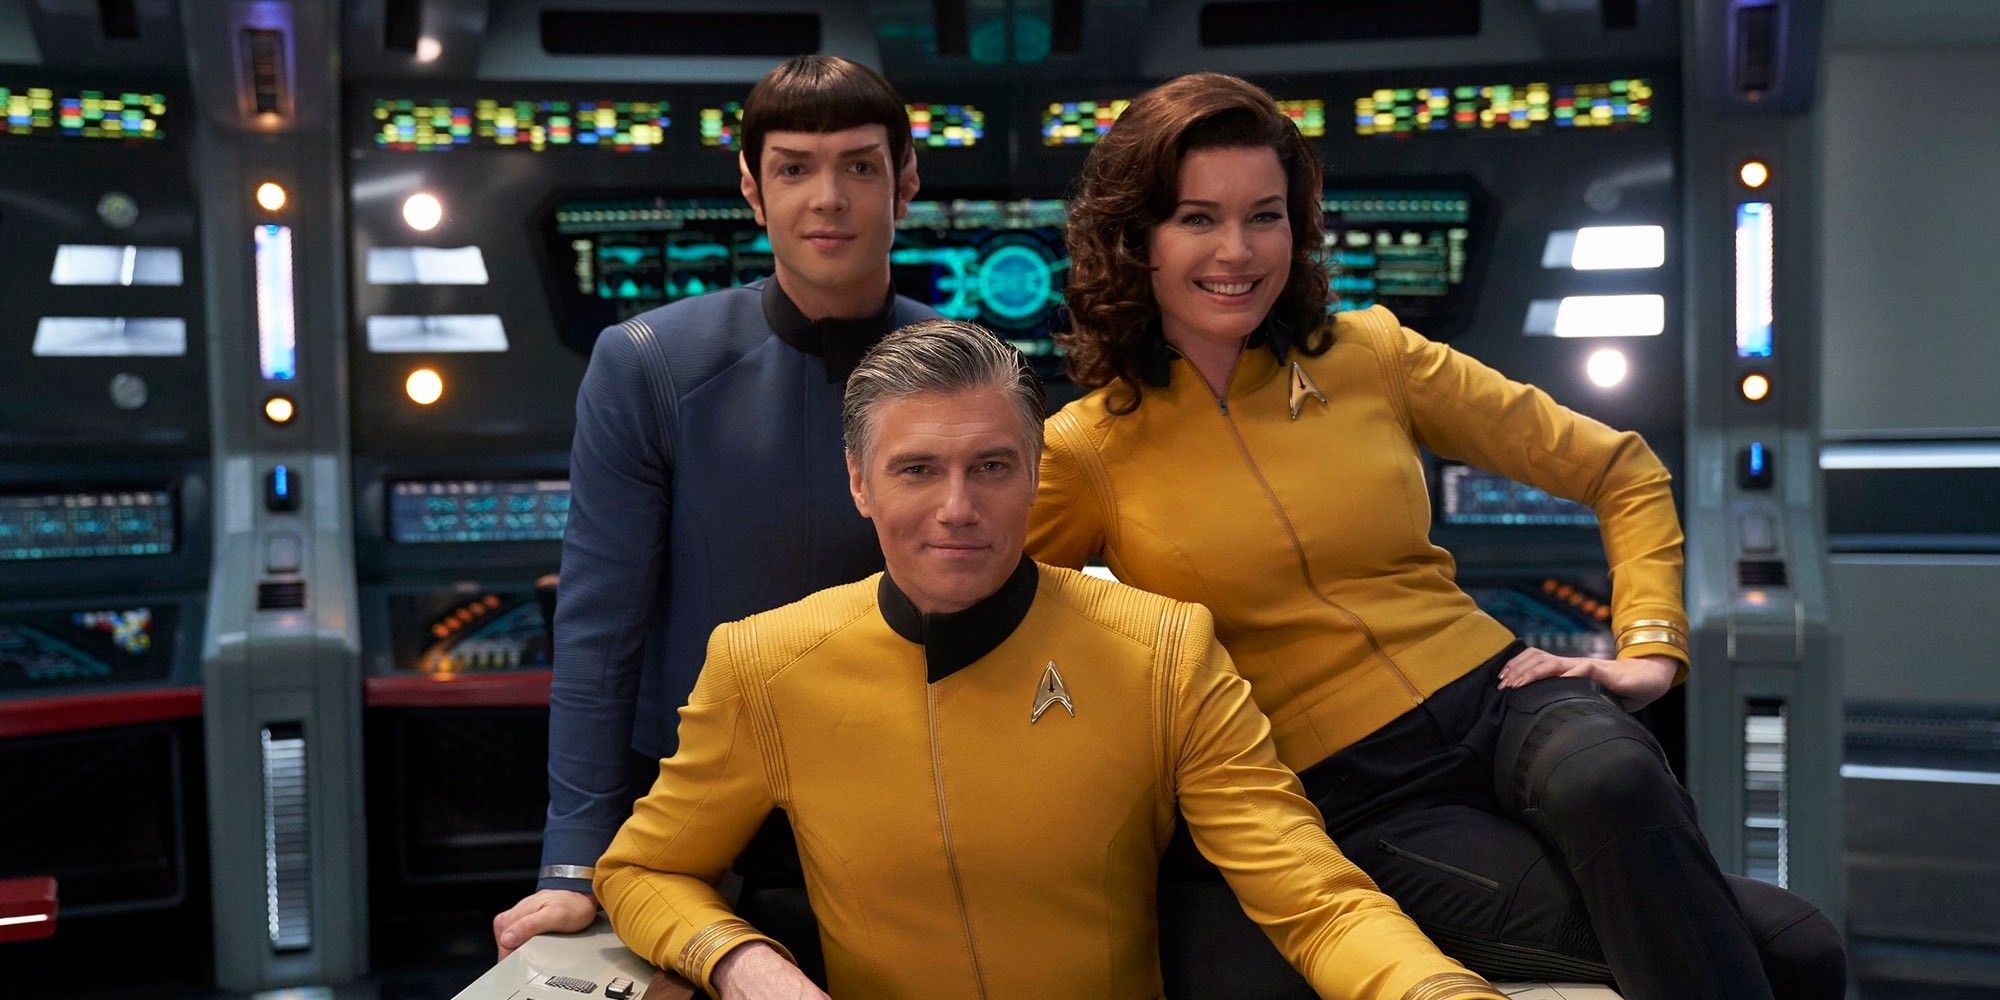 Star Trek: Alex Kurtzman Addresses Potential Discovery Returns of Spock & Pike